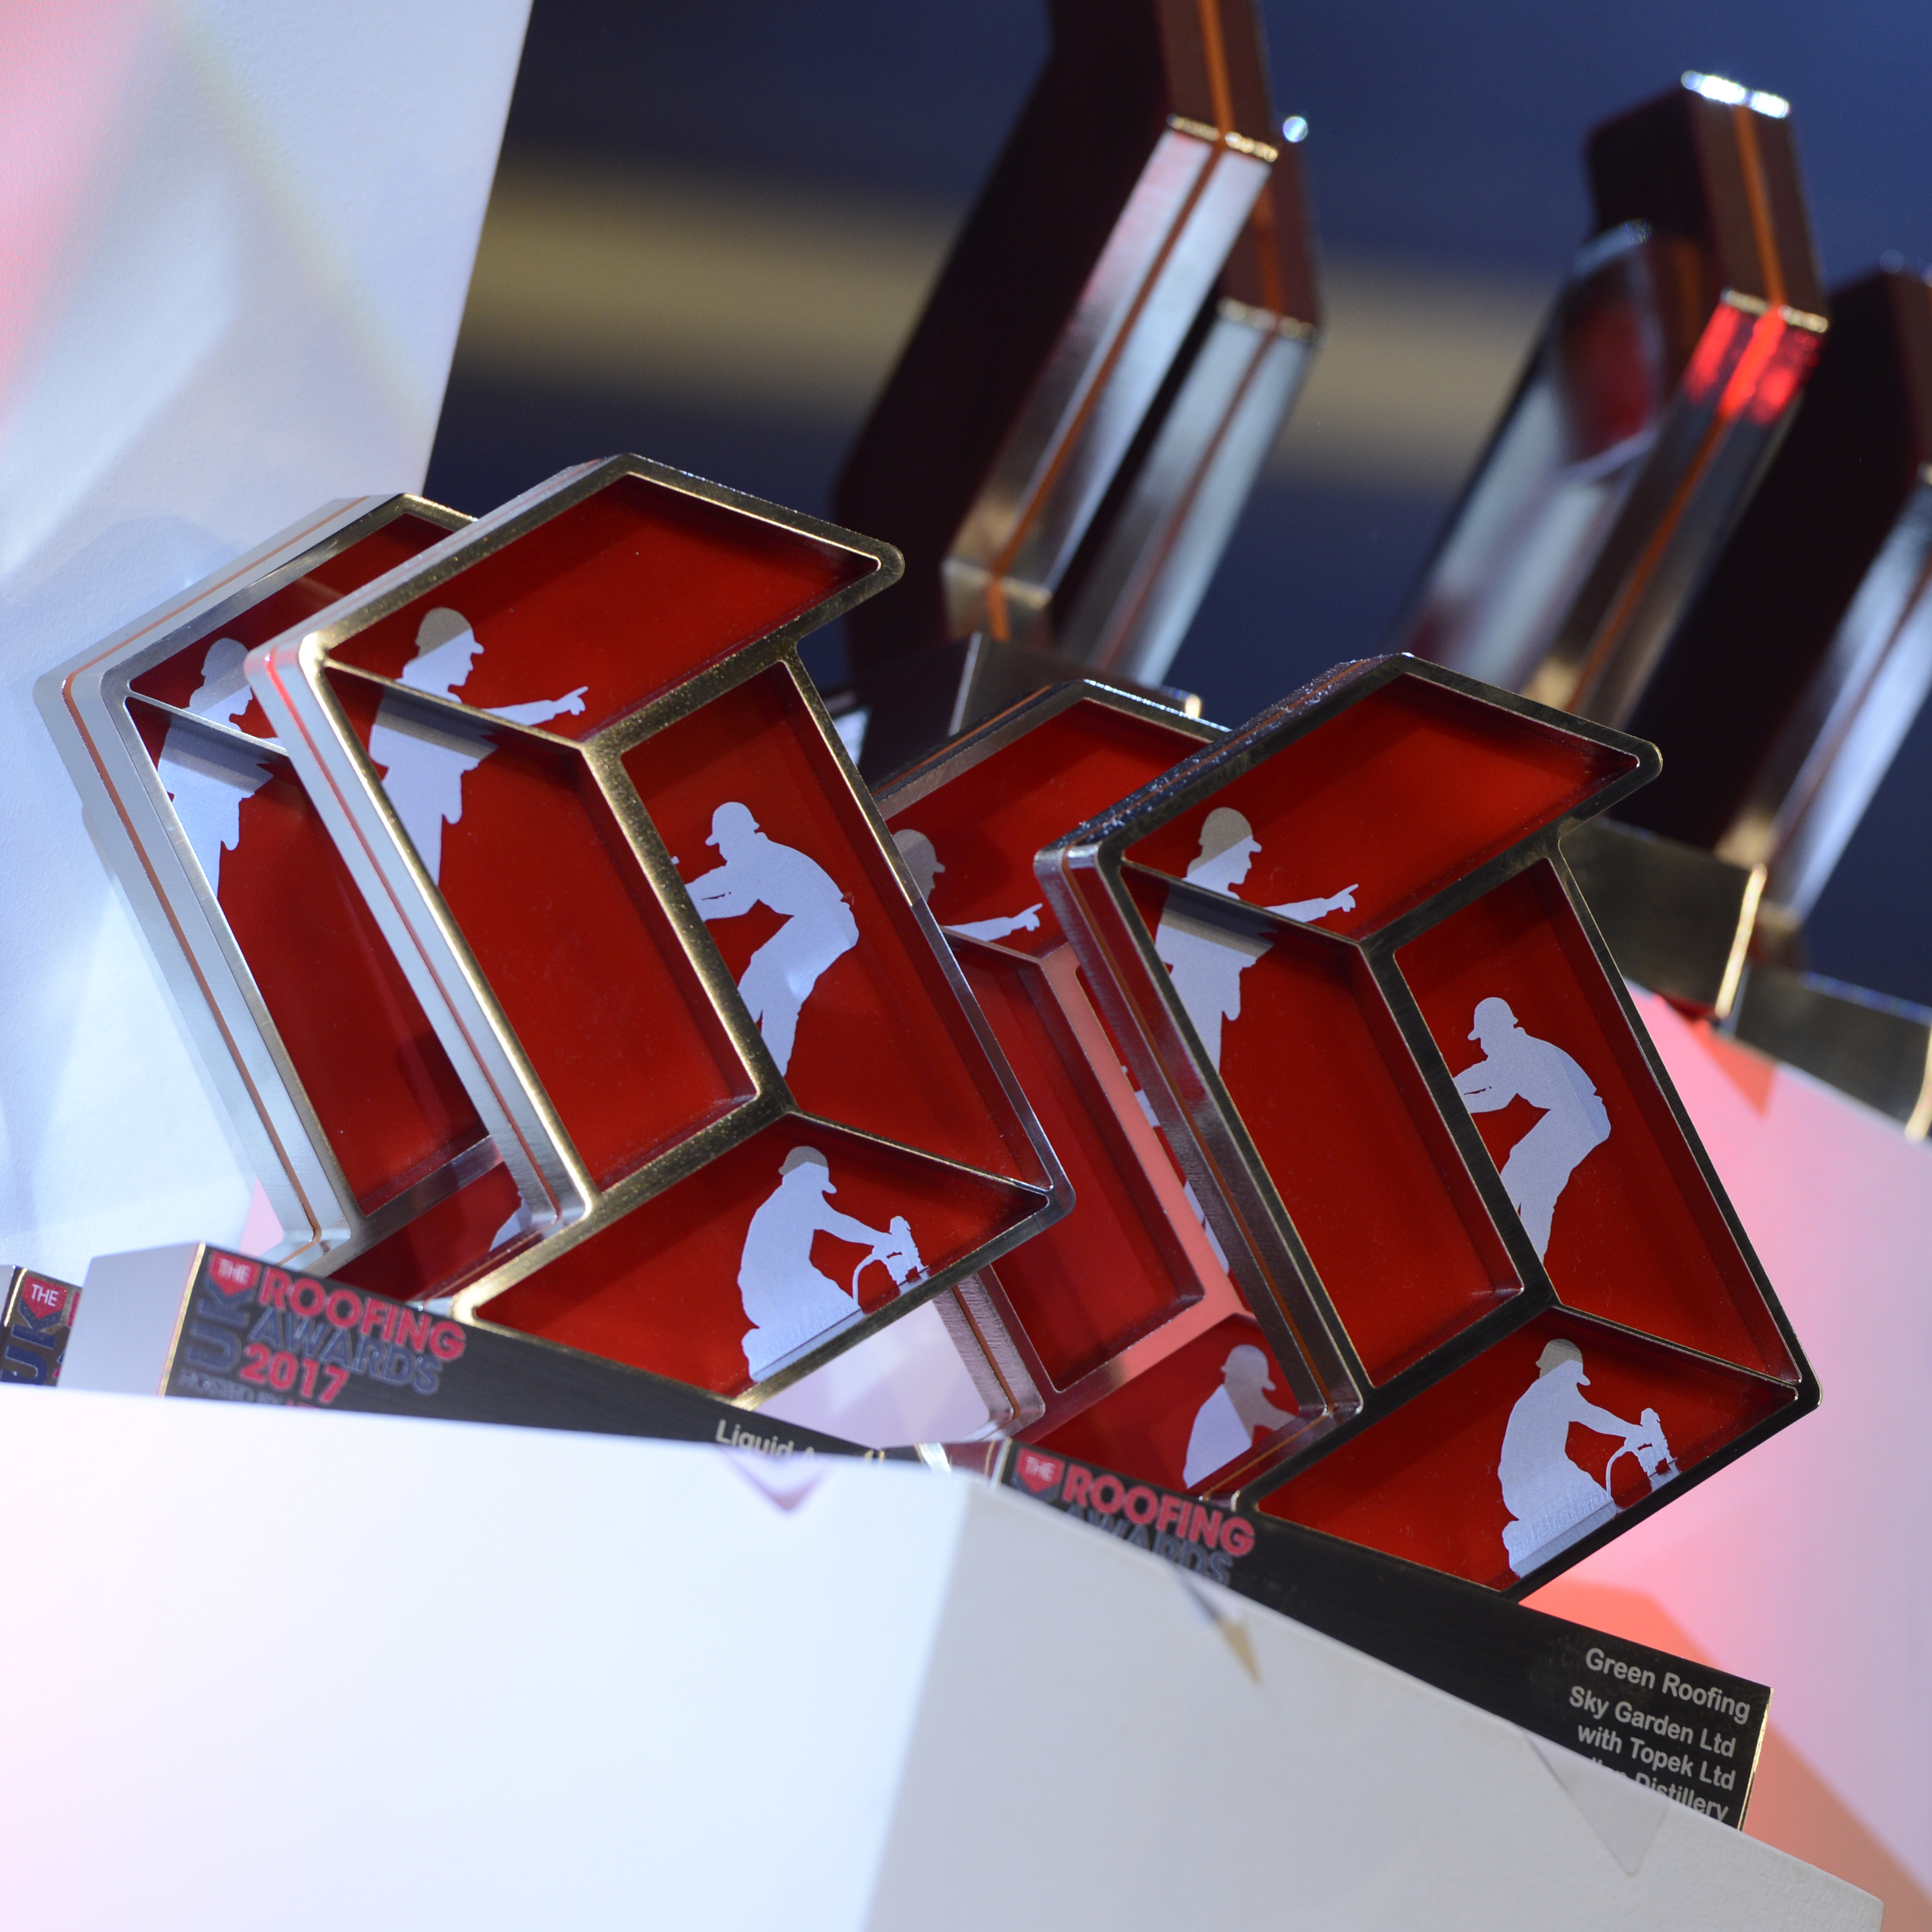 UK Roofing Awards Trophies